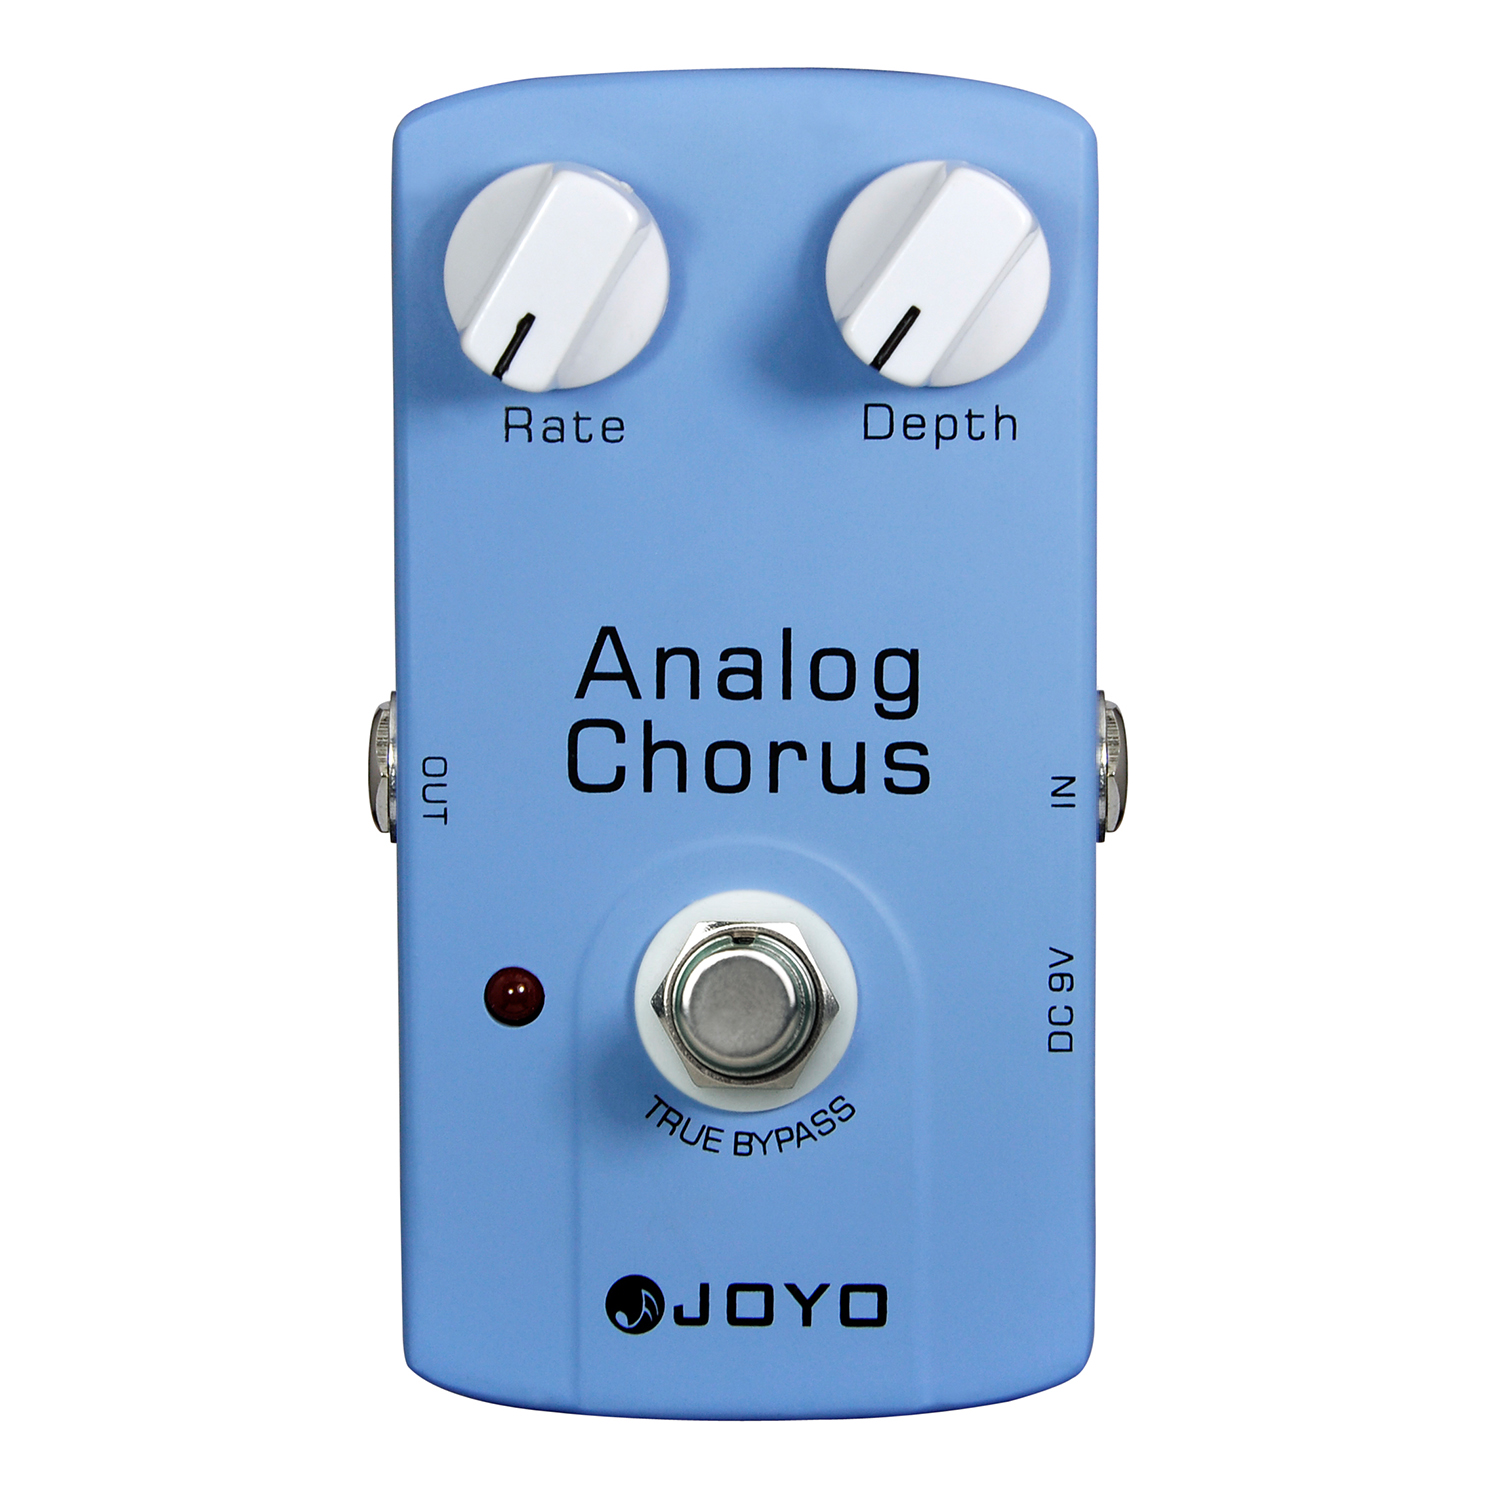 JOYO JF-37 Analog Chorus Electric Guitar Effect Pedal True Bypass JF 37 joyo jf 37 analog chorus electric guitar effect pedal true bypass design adjustable tone